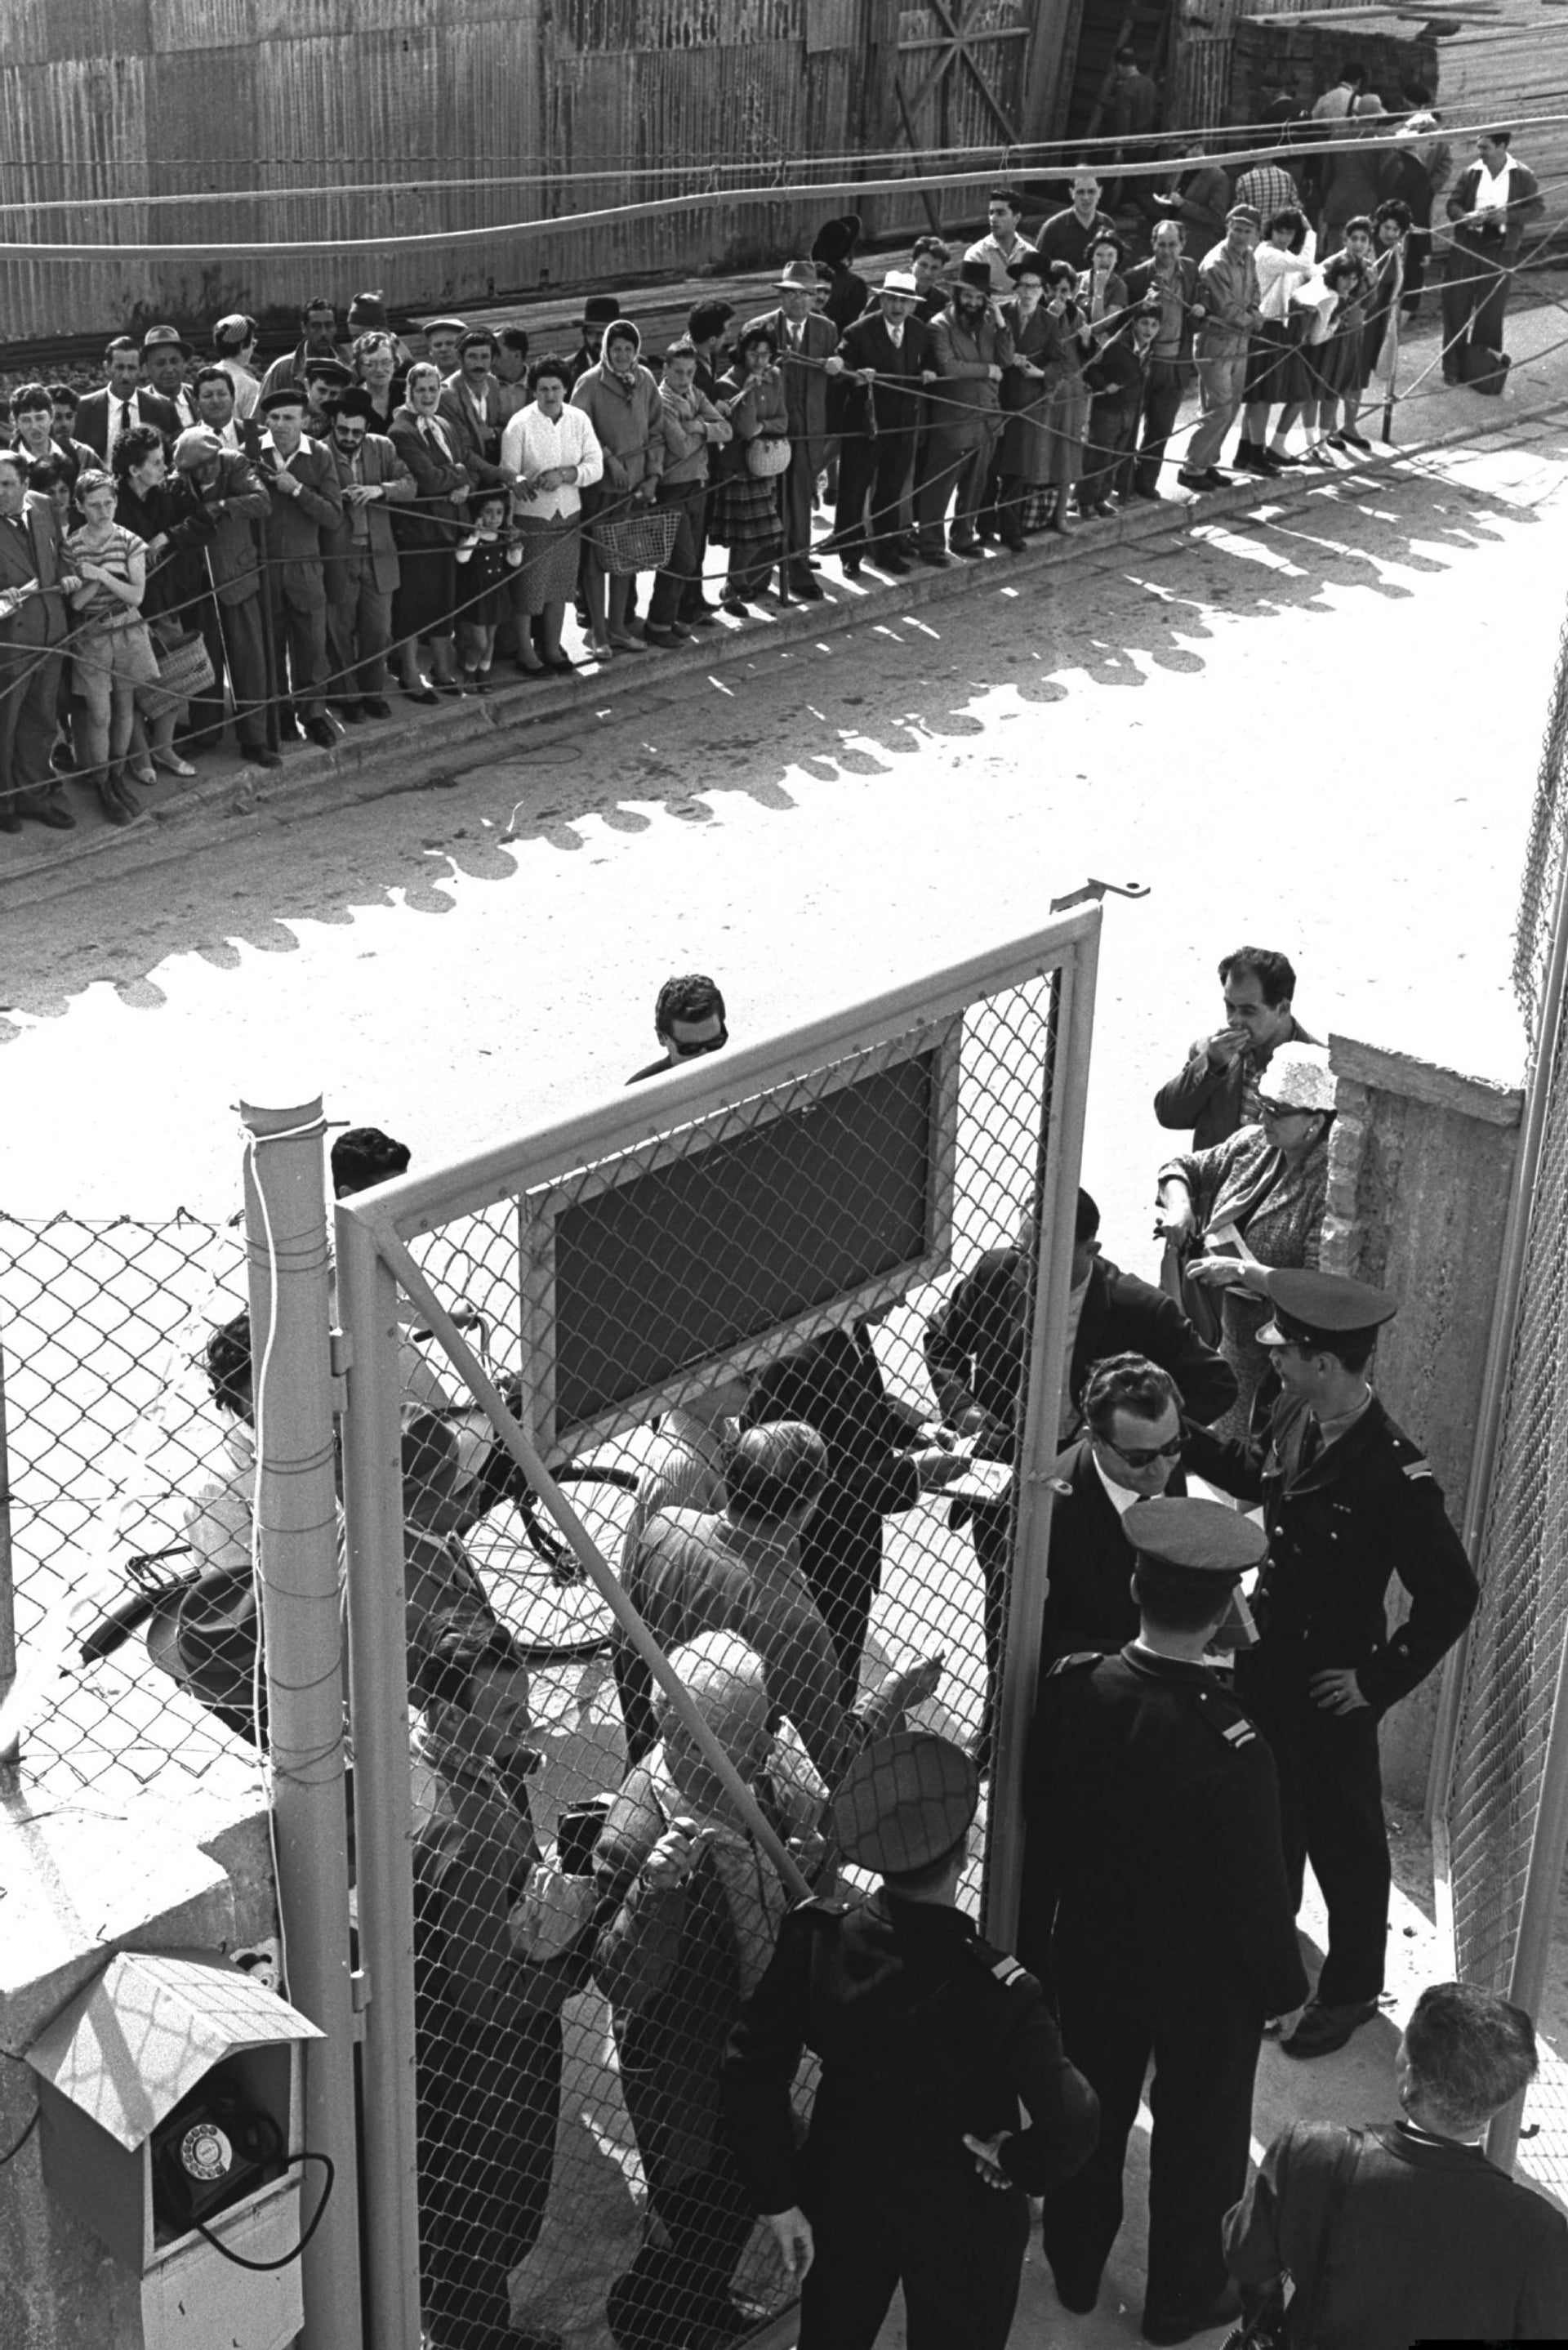 Meticulous security checks outside Beit Ha'am in Jerusalem, where the trial of Nazi war criminal Adolf Eichmann was taking place.